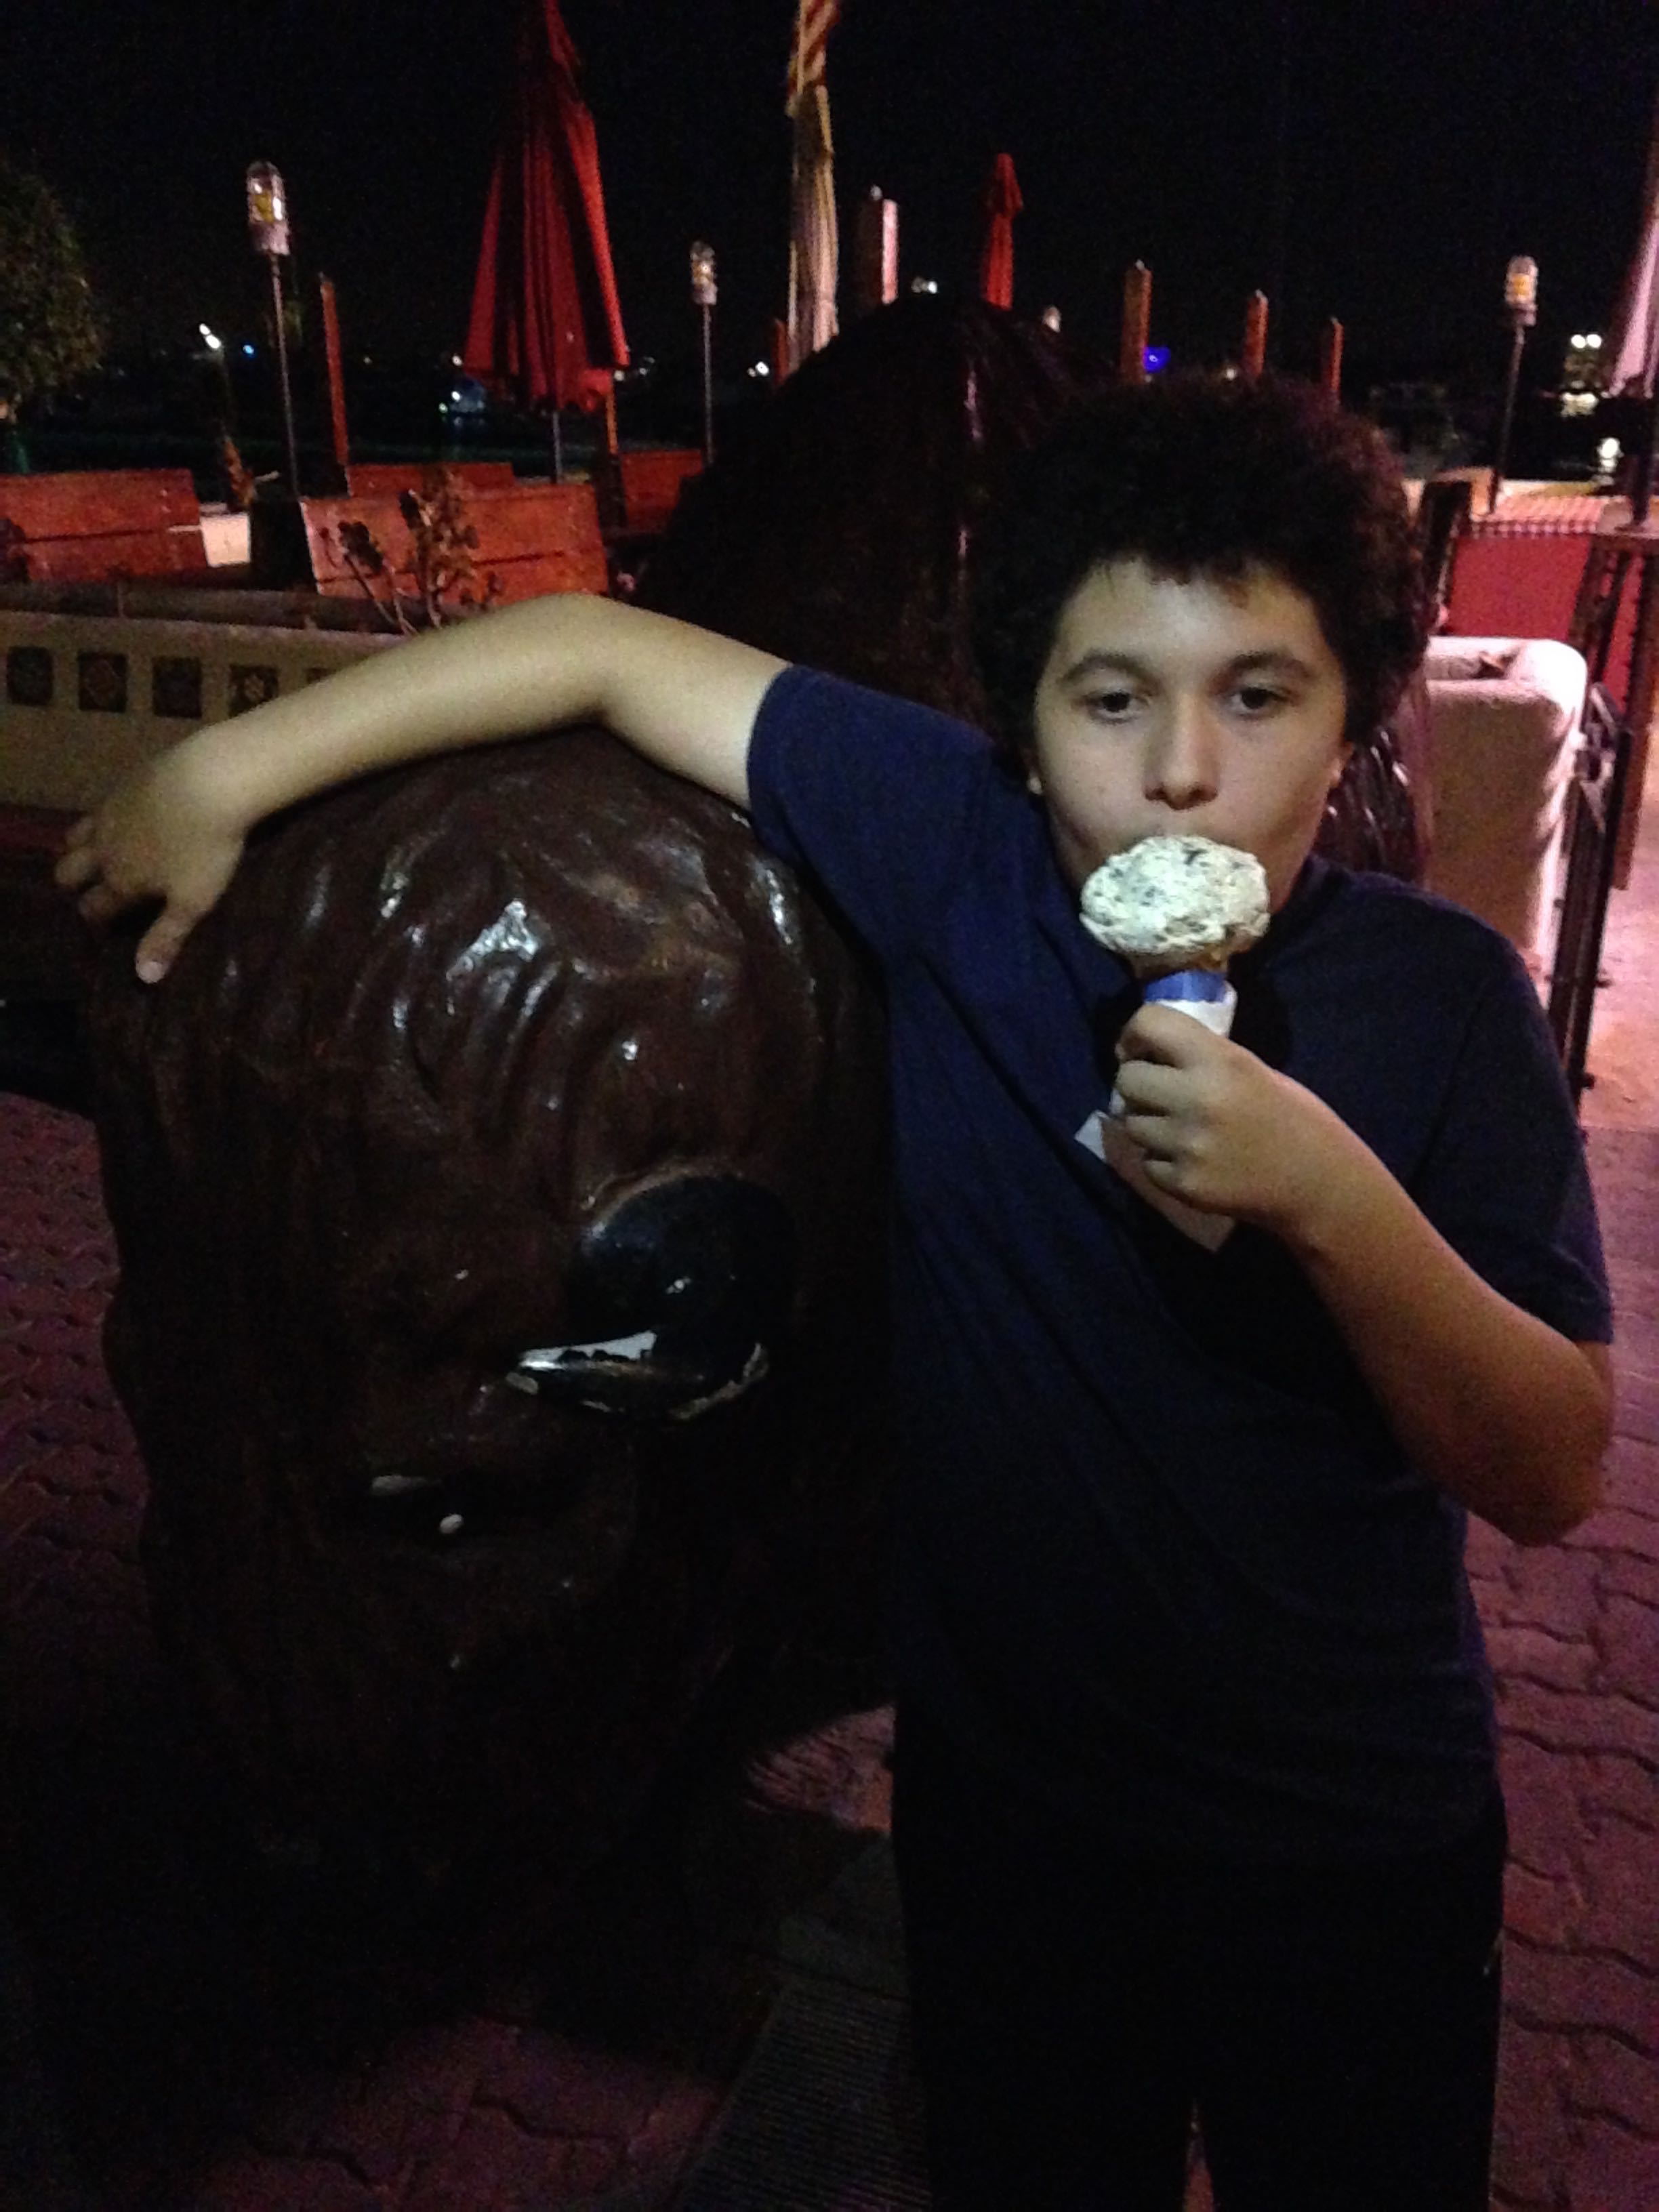 eating ice cream from Big Olaf's next to a buffalo